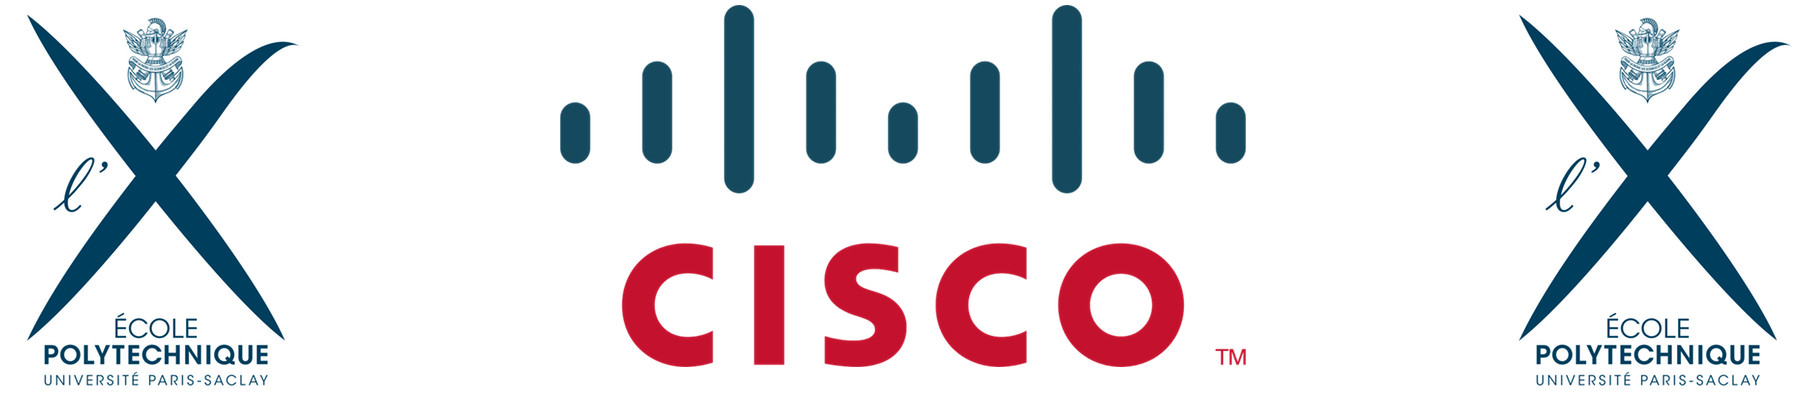 "Cisco-Polytechnique ""Internet of Everything"""